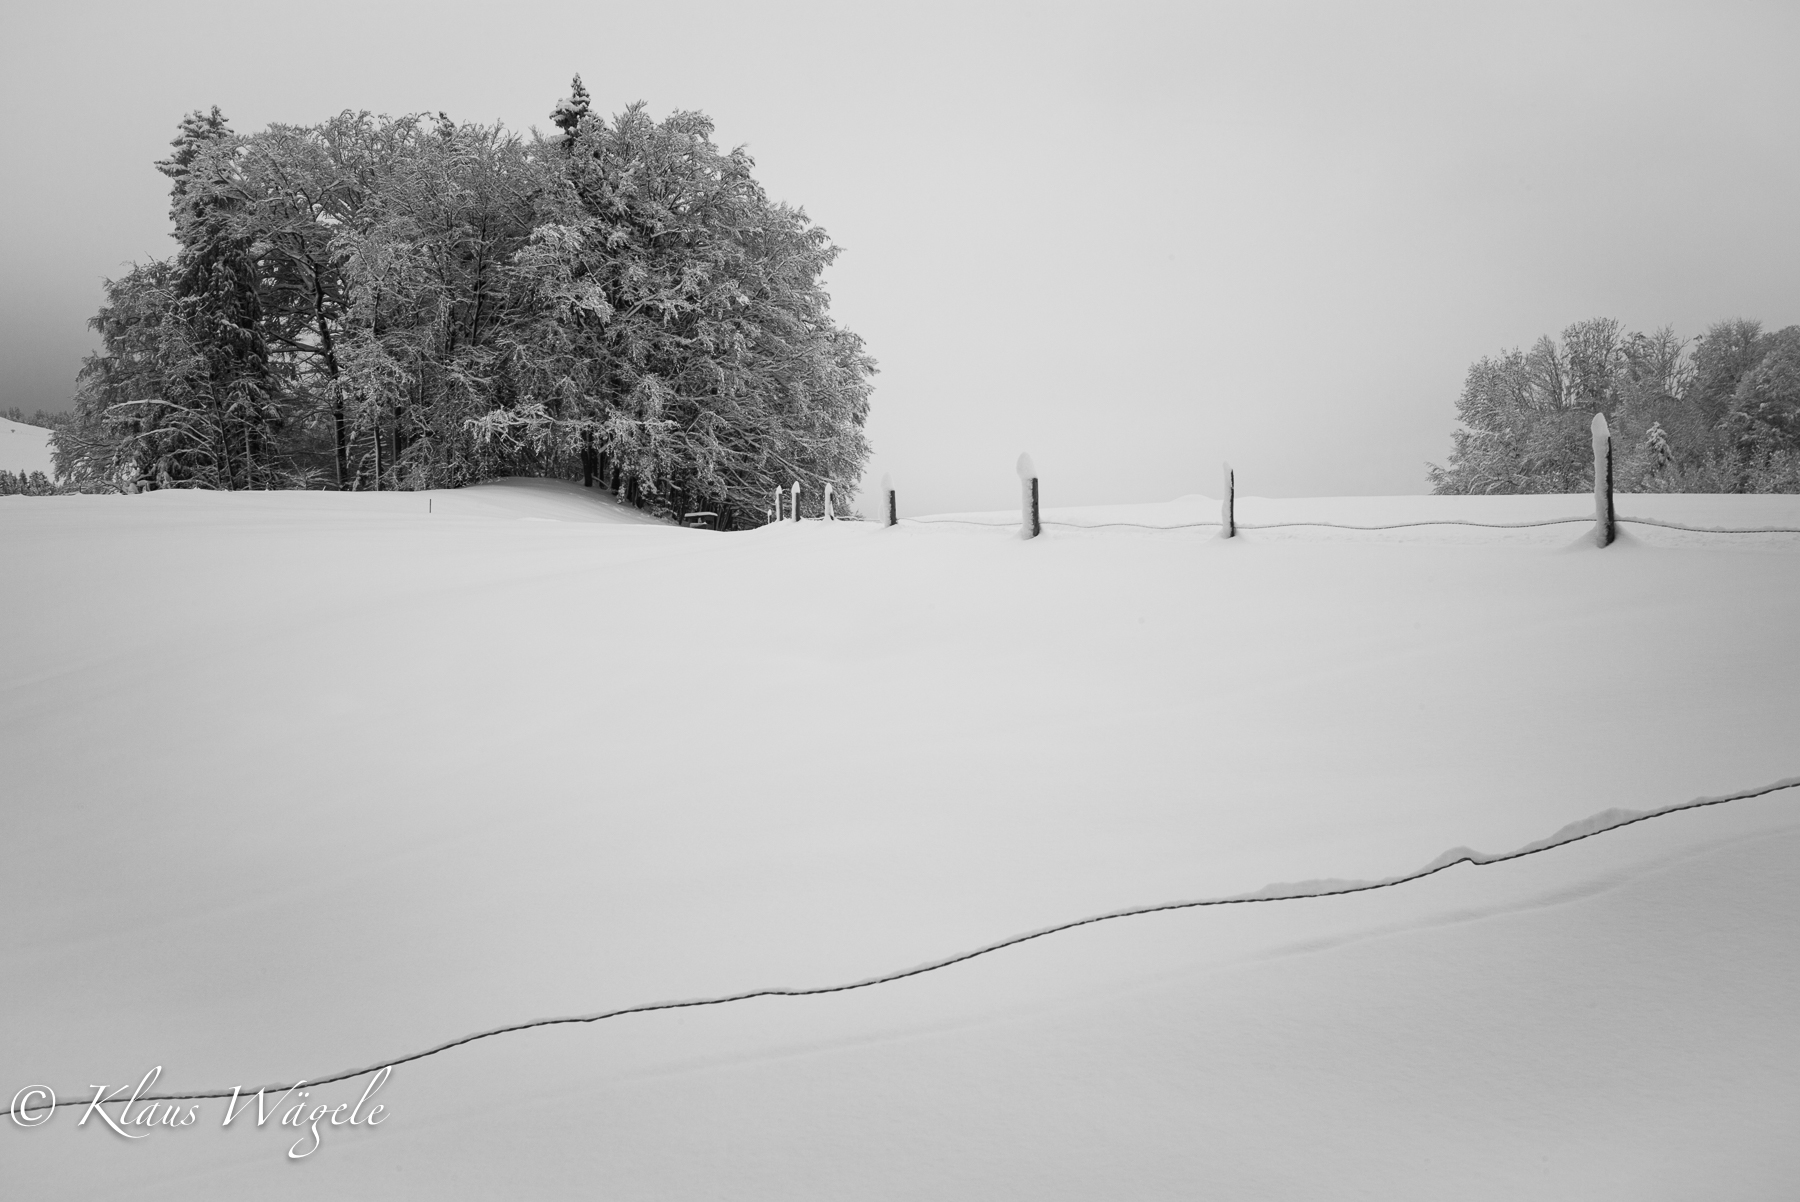 Snow and fence (Bavaria, Germany)